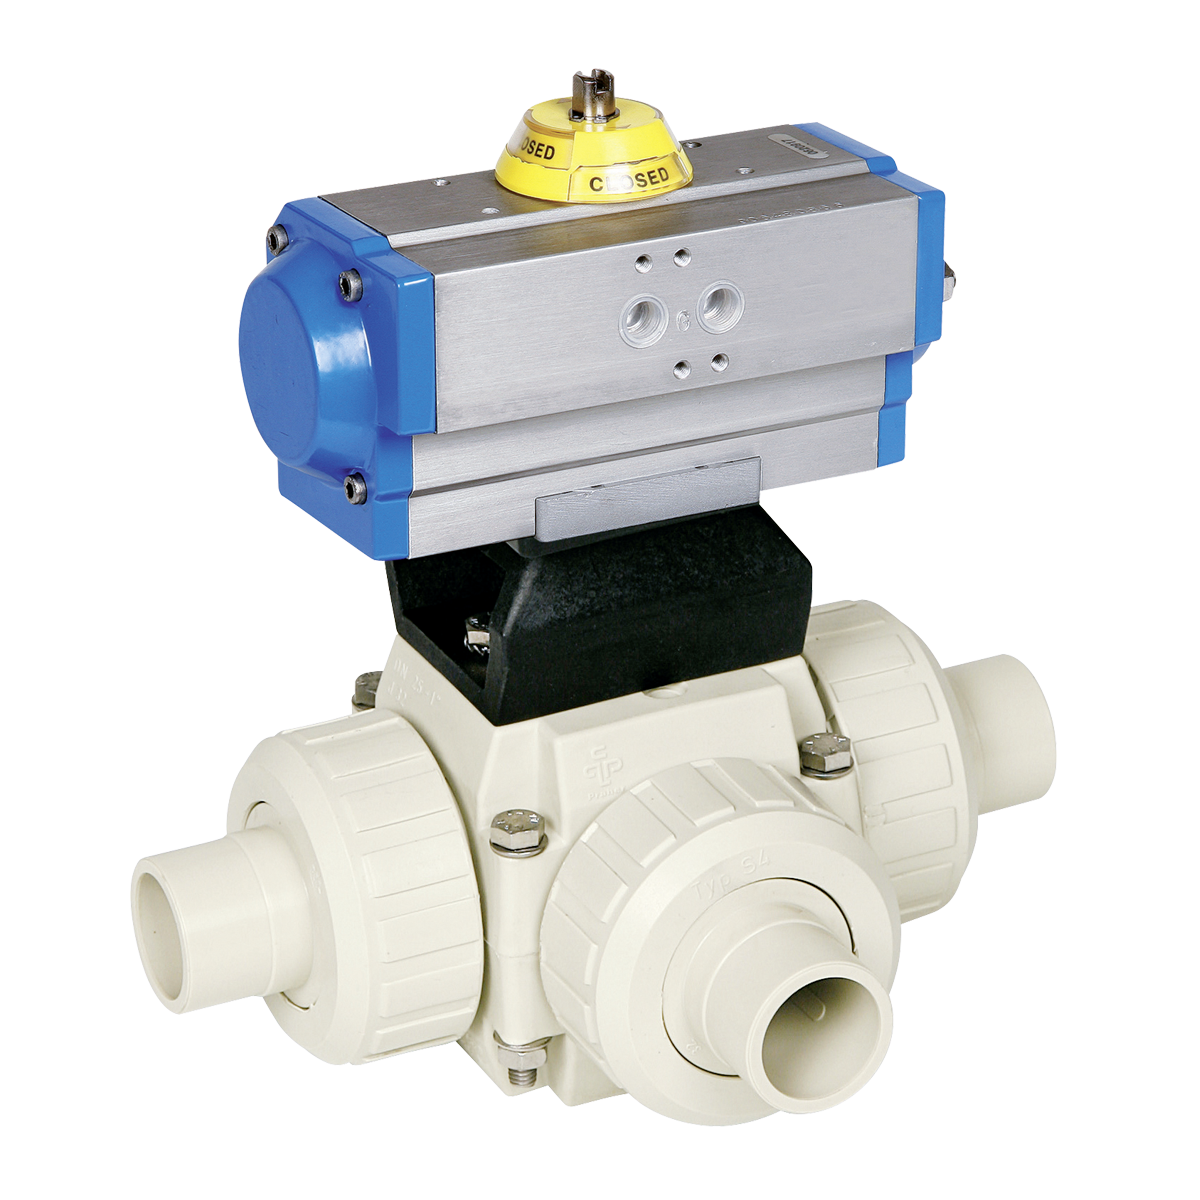 Praher 3-way ball valve S4 PP with pneumatic actuator, beige, black, blue, silver, yellow